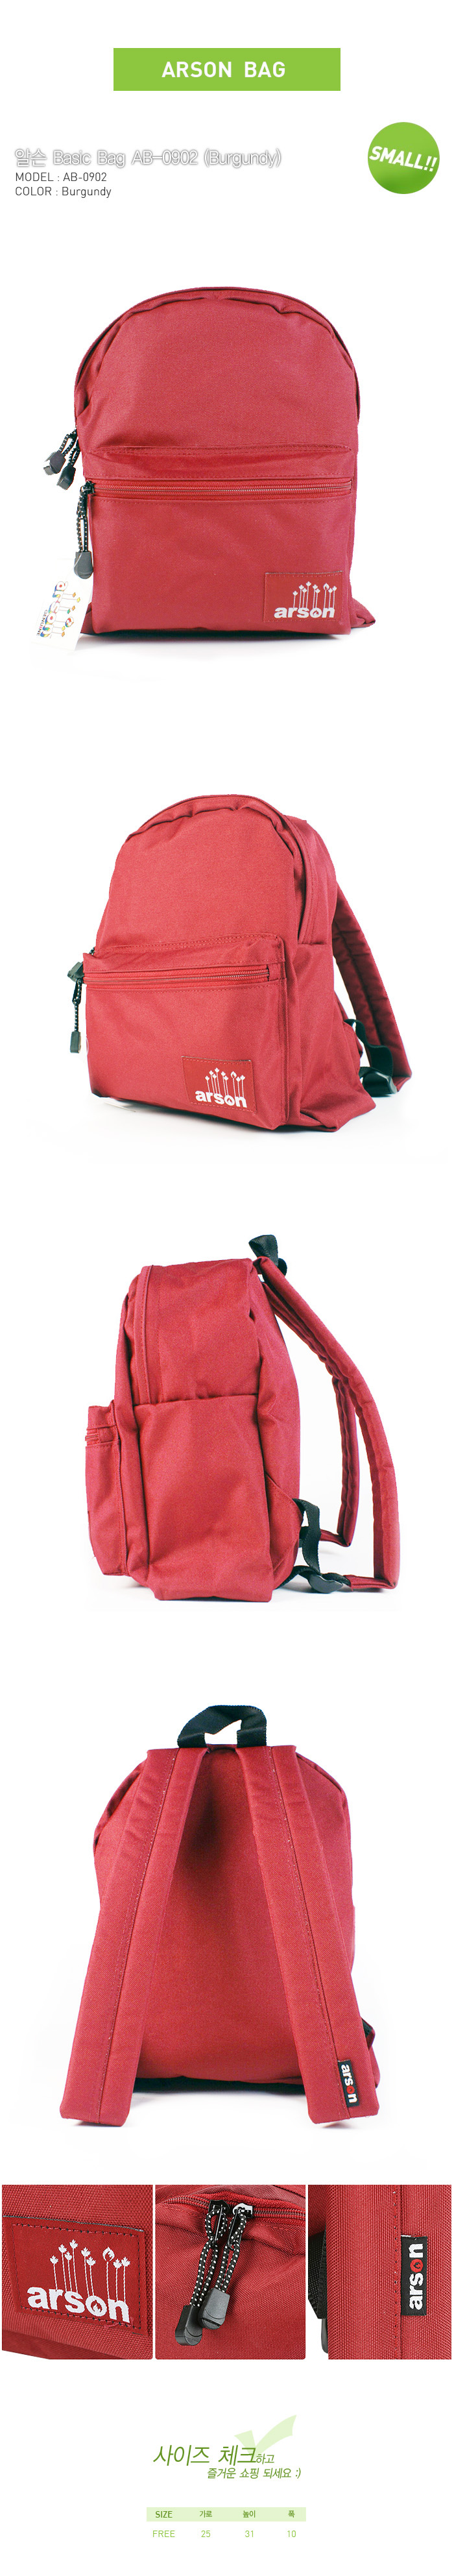 [ ARSON ] AB-0902 (Burgundy)/Backpack School Bag